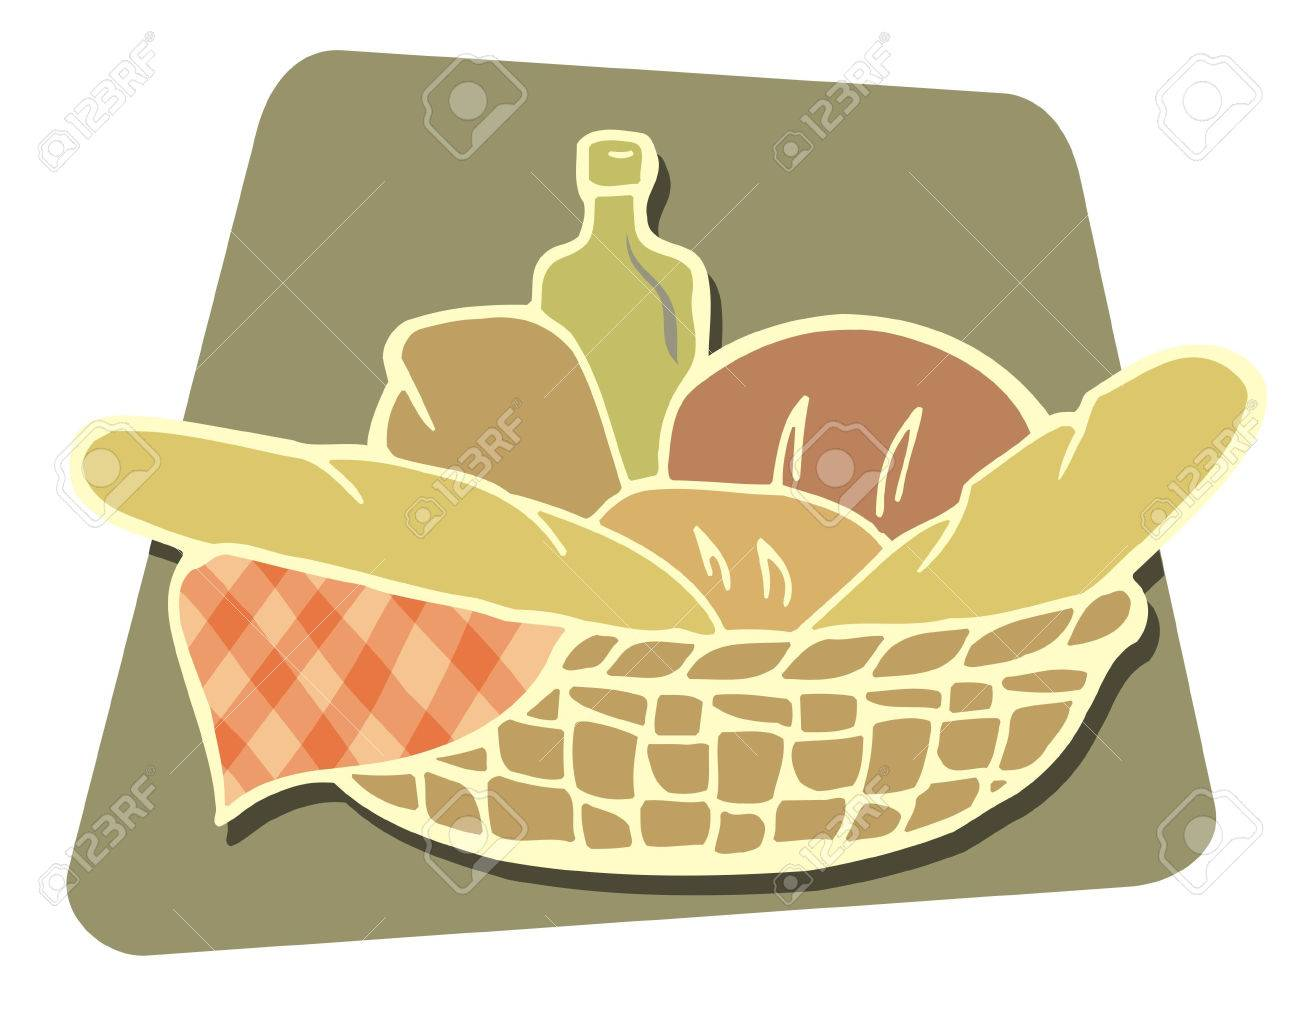 Basket of breads icon - 2941944